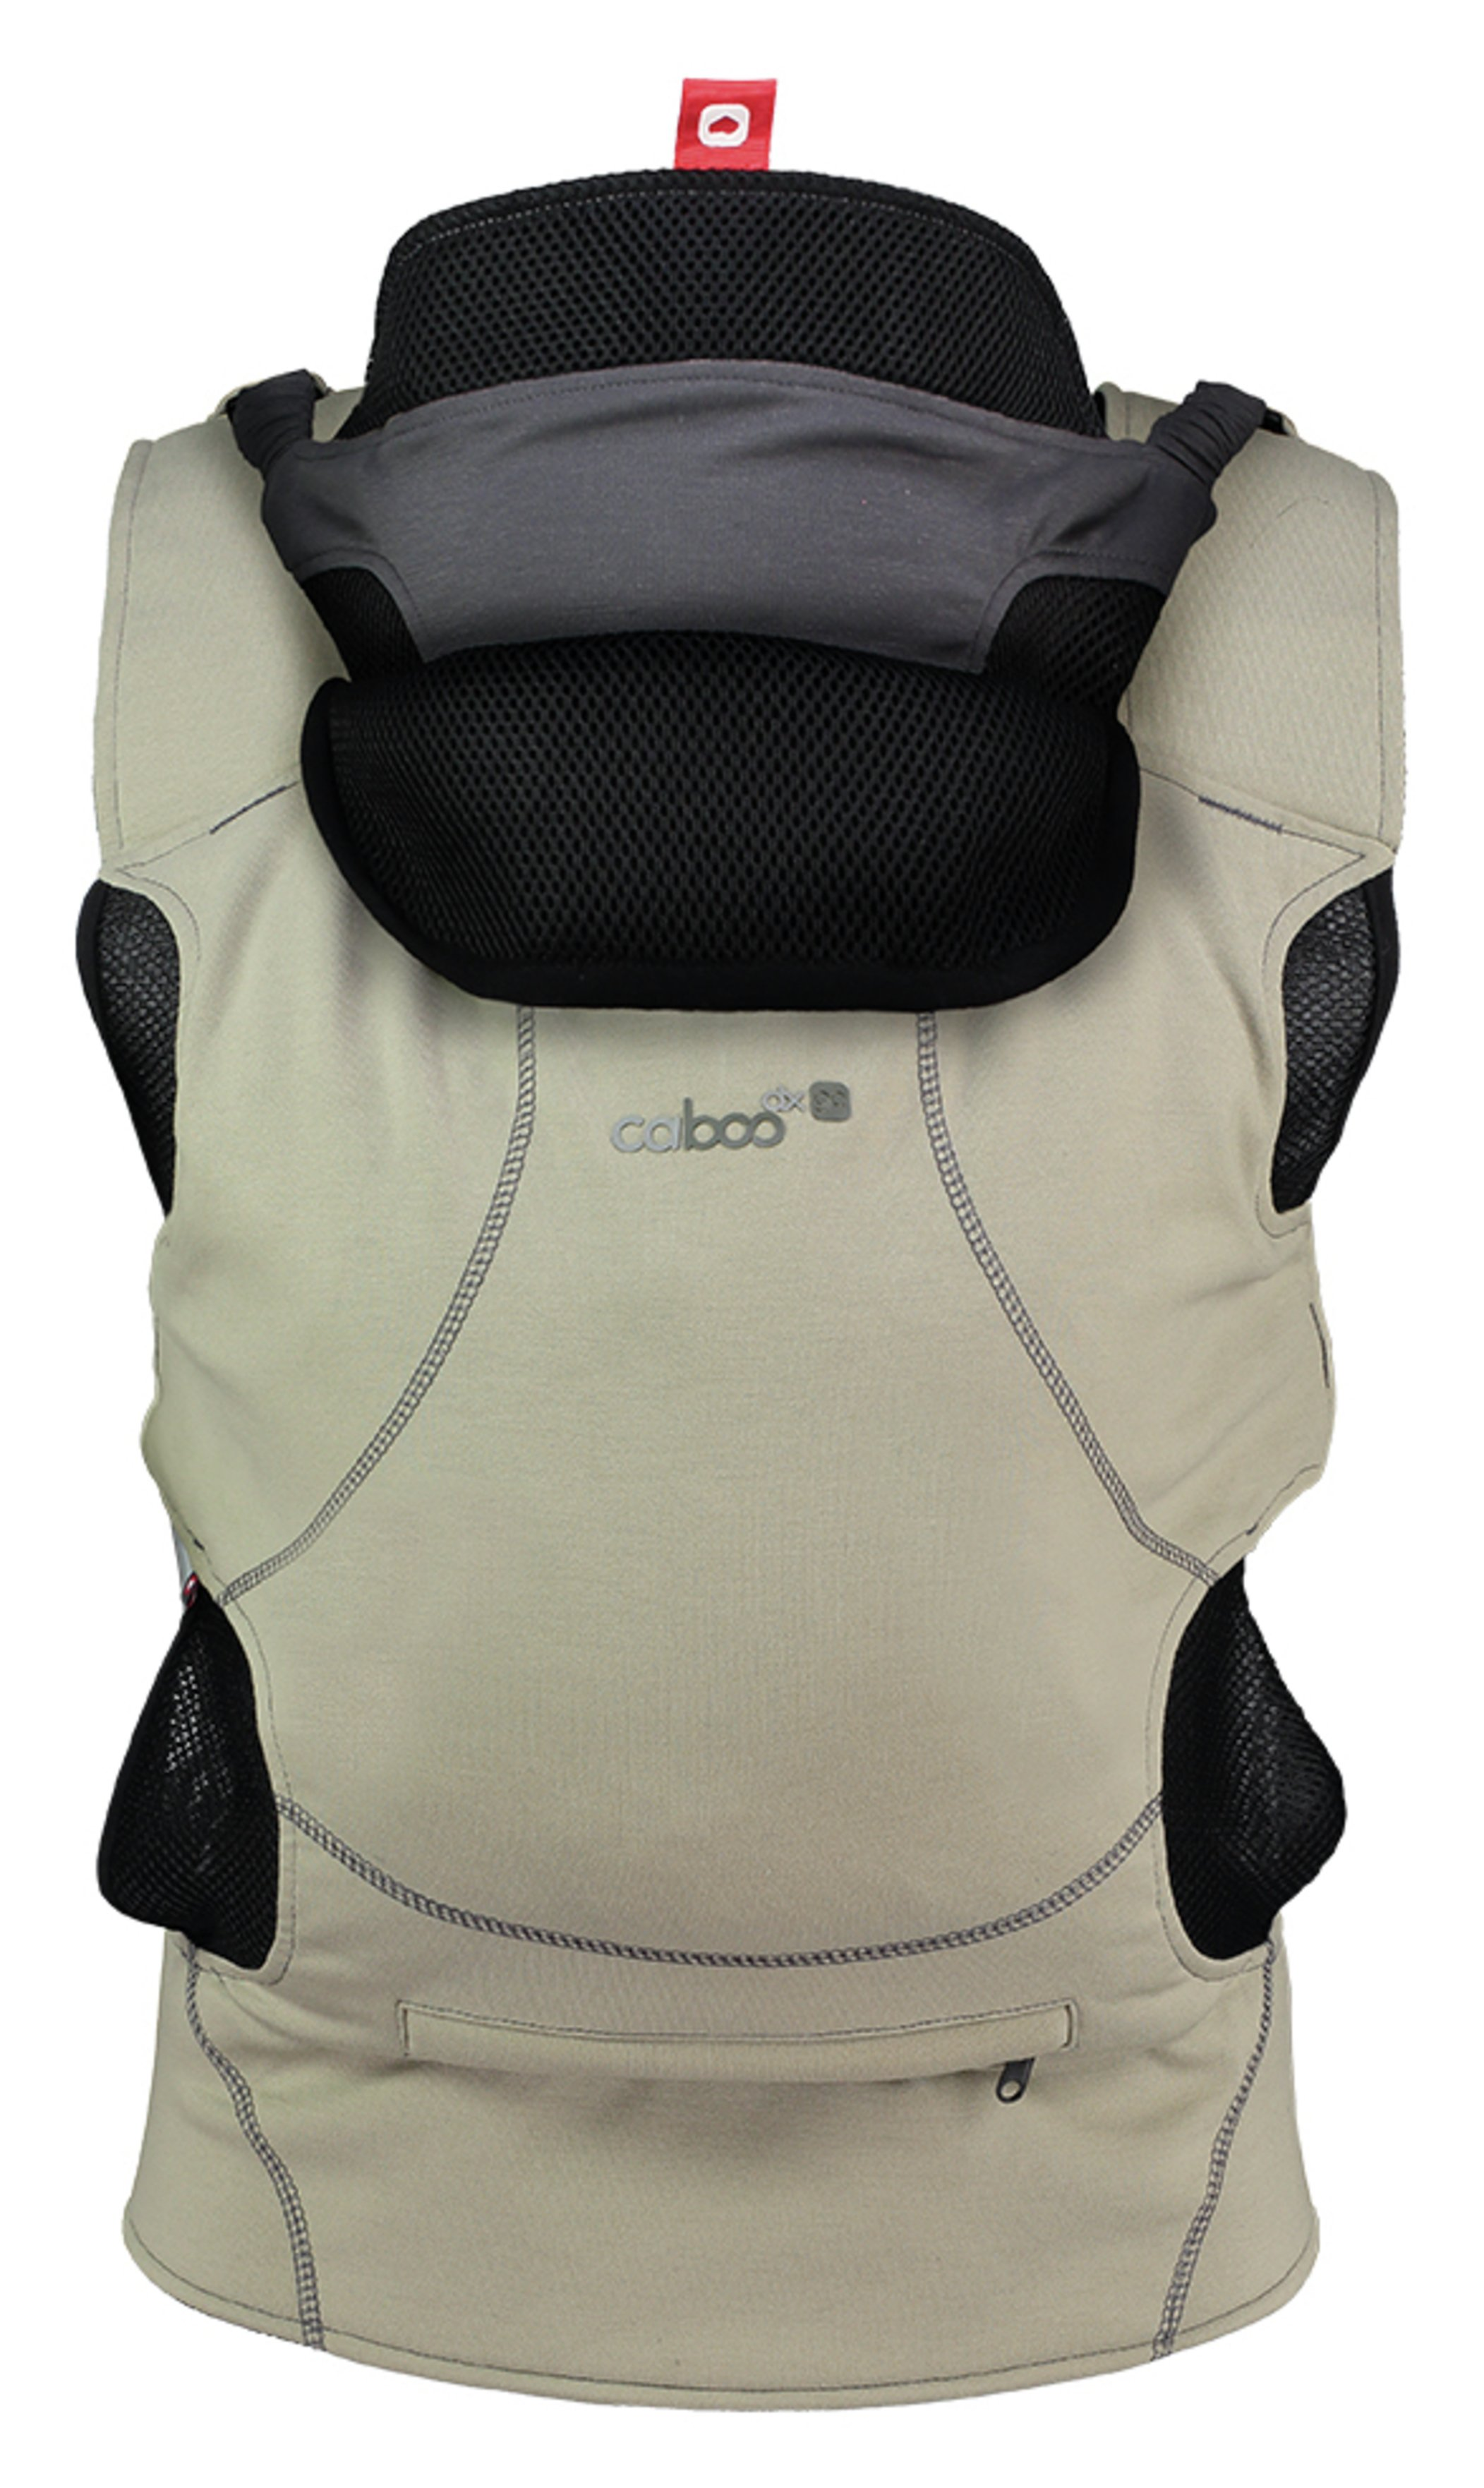 Image of Caboo DXGO Baby Carrier - Khaki